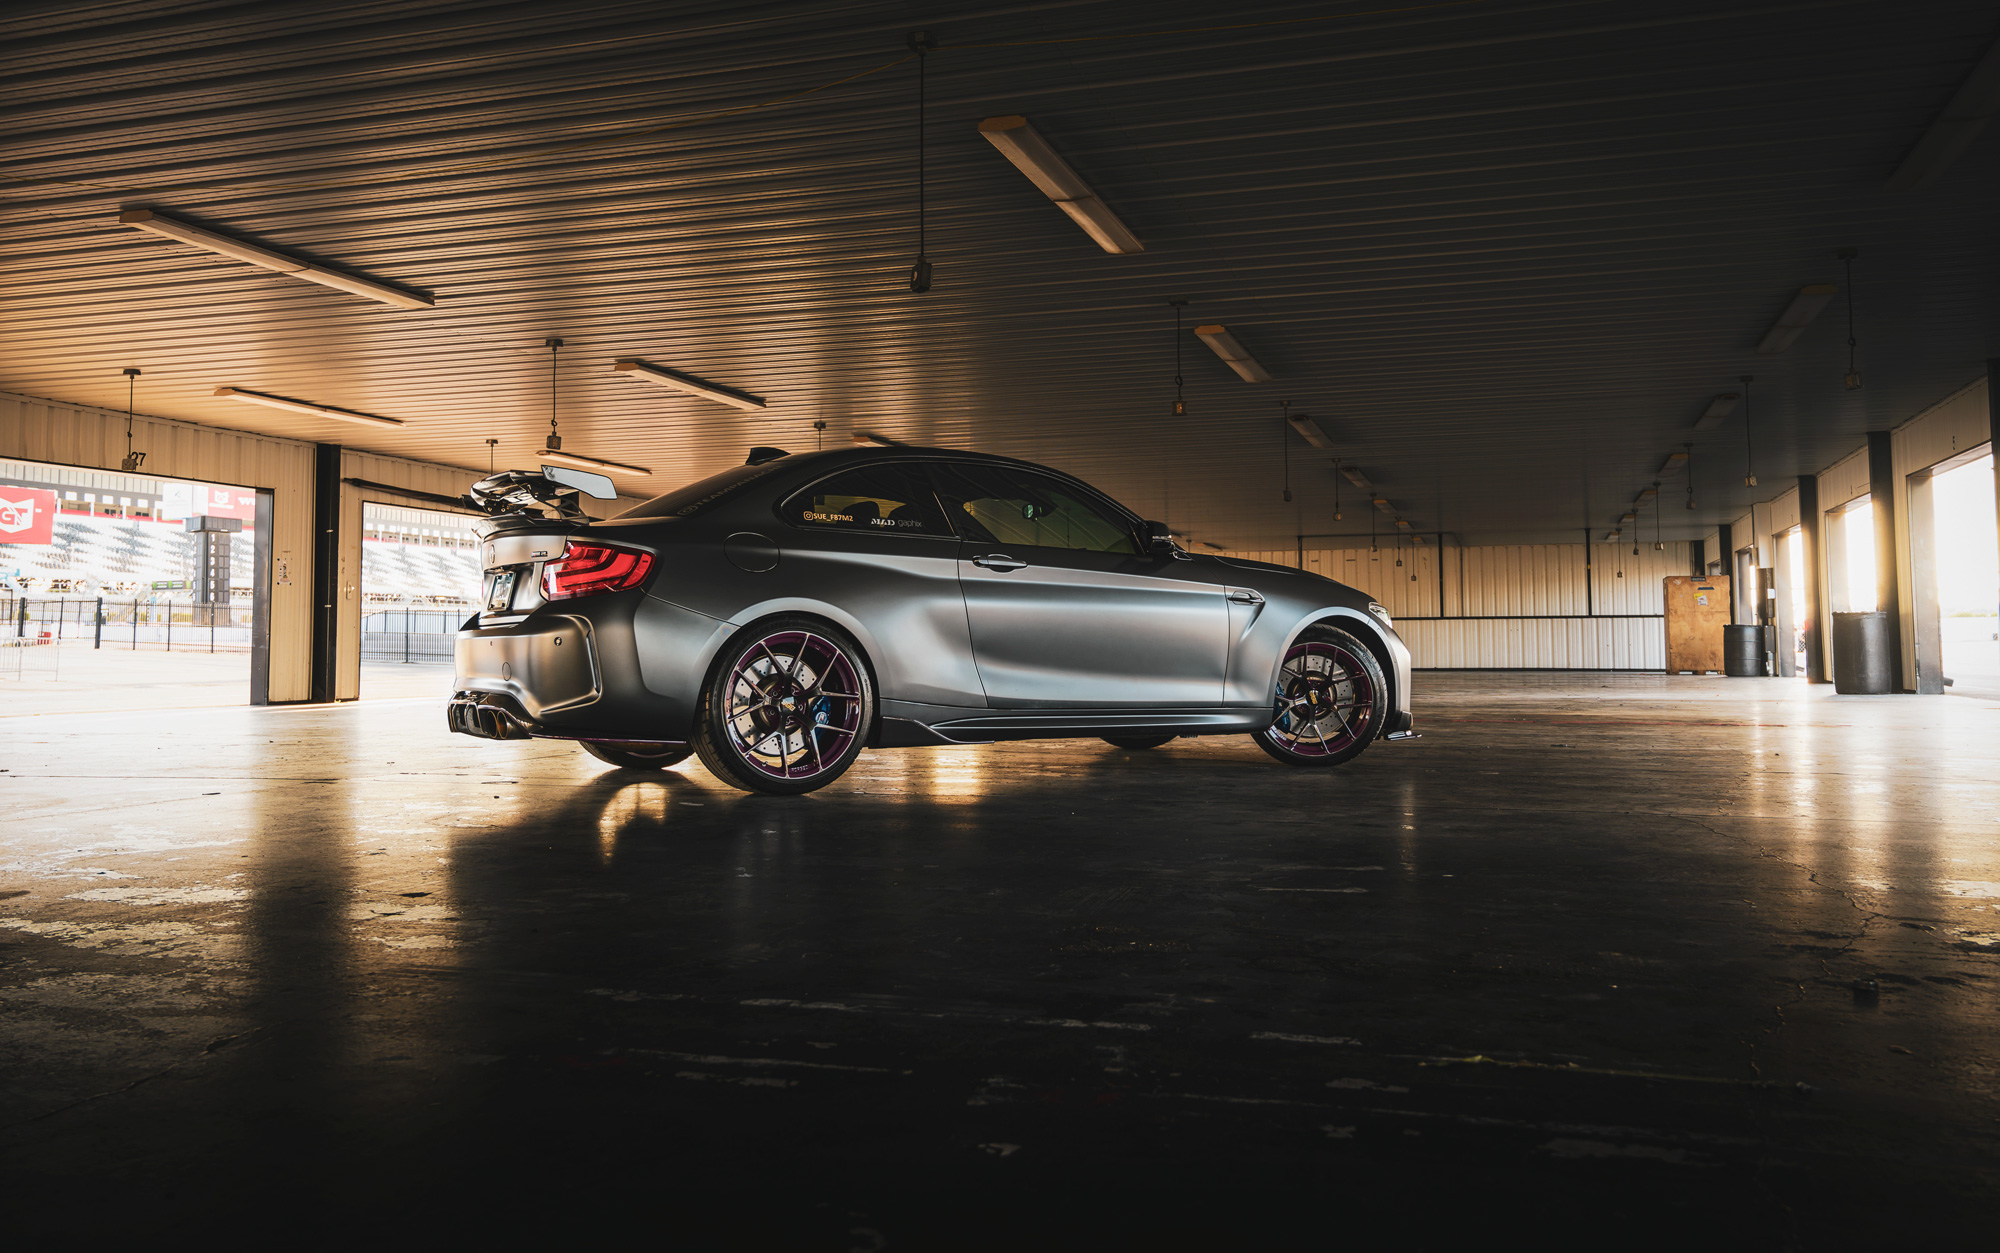 BMW M2 Pocono garage